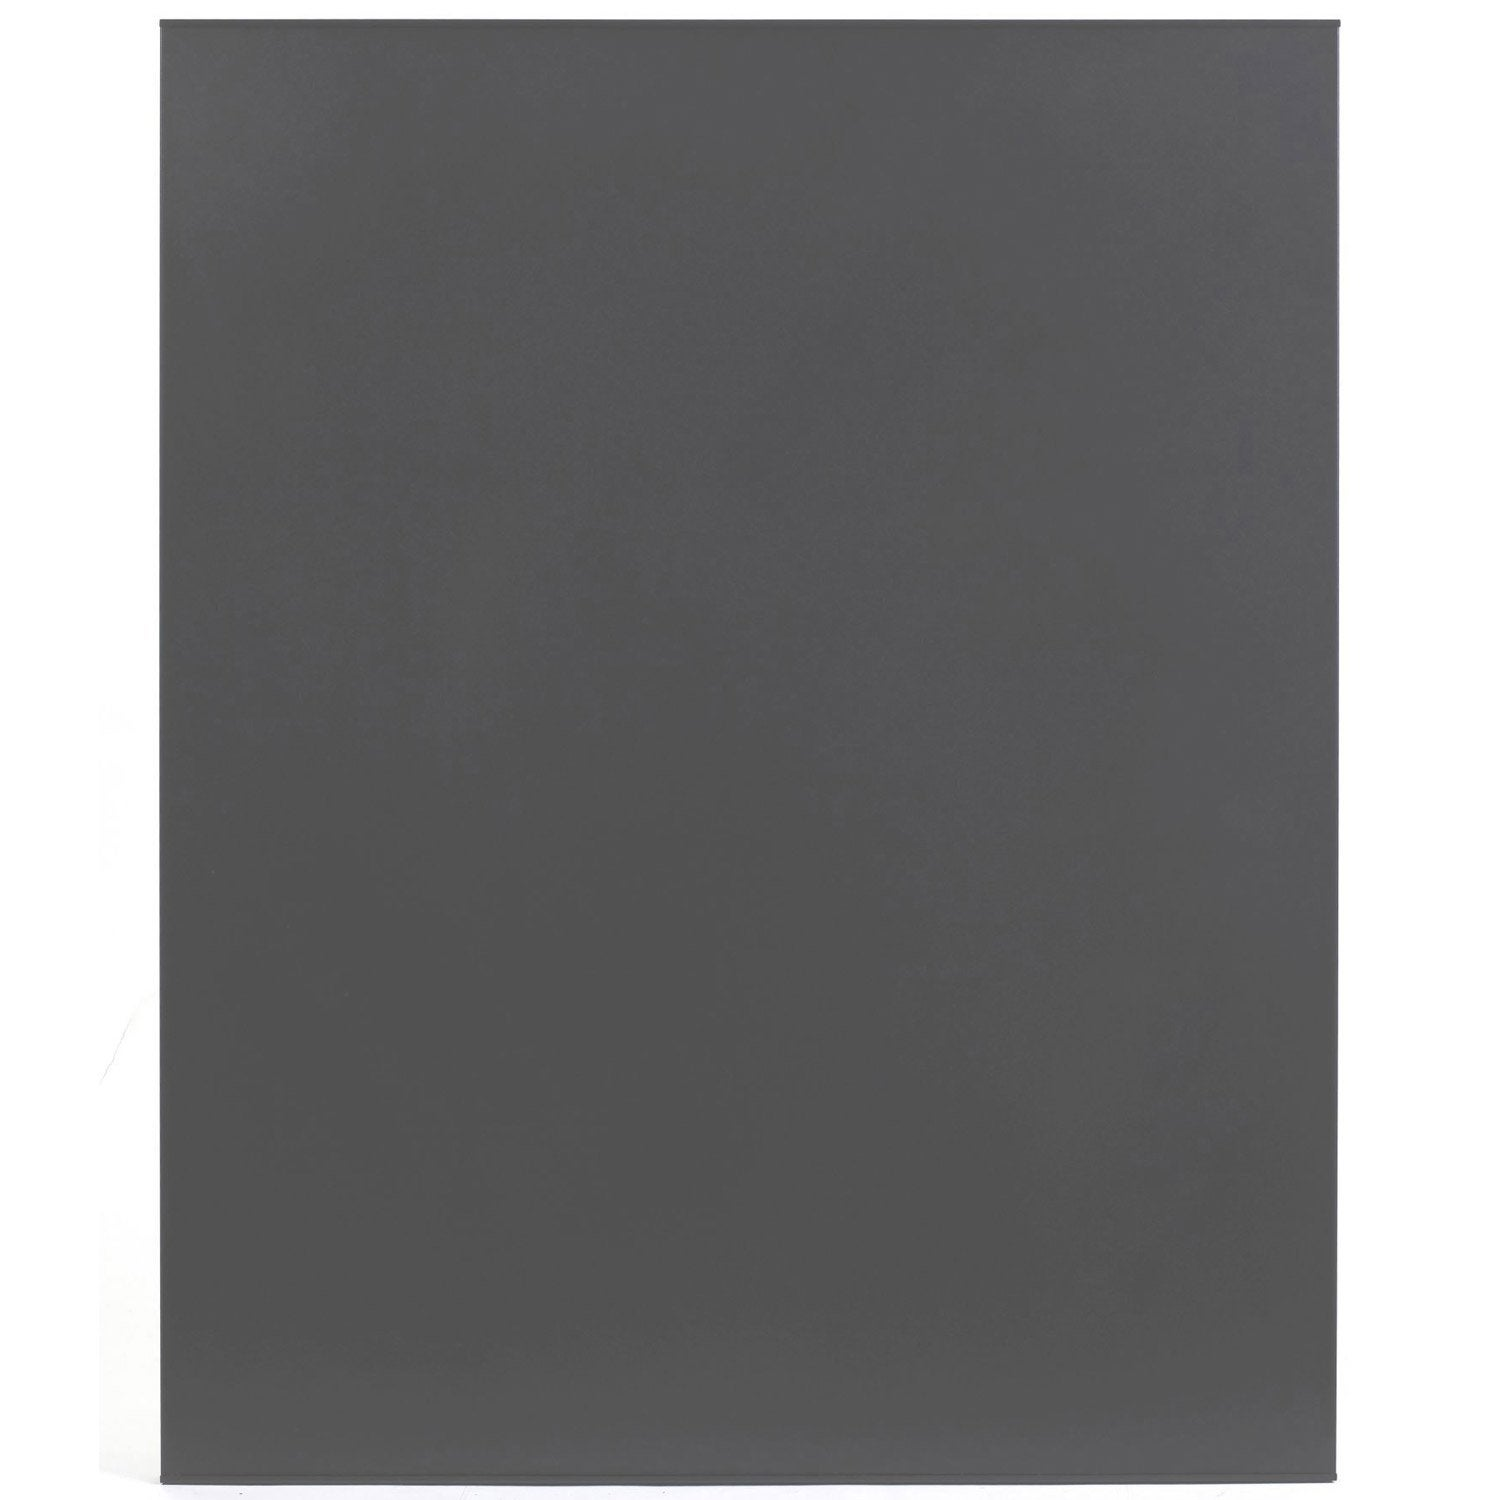 Protection murale en acier coloris gris 80 x 120 cm leroy merlin - Protection balcon leroy merlin ...